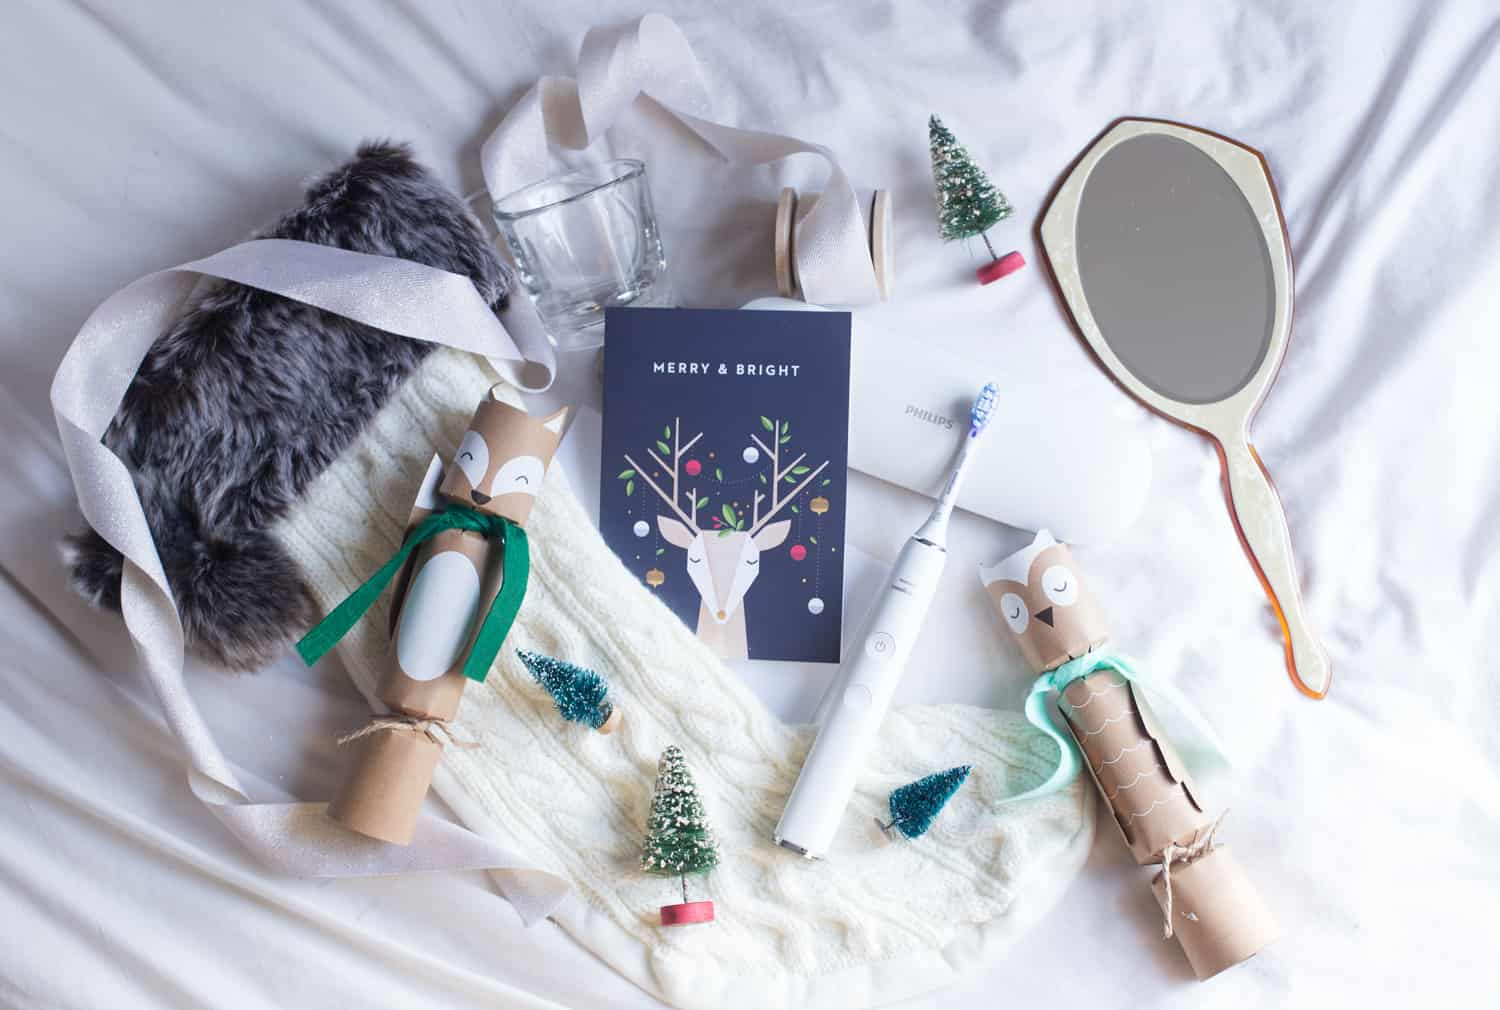 Luxury Self Care DIY Gift Basket ideas | top long lasting beauty personal care products | best self care daily beauty routine tips |#WorldsSmartestToothbrush #PhilipsSonicare #OprahsFavoriteThings #CollectiveBias #ad